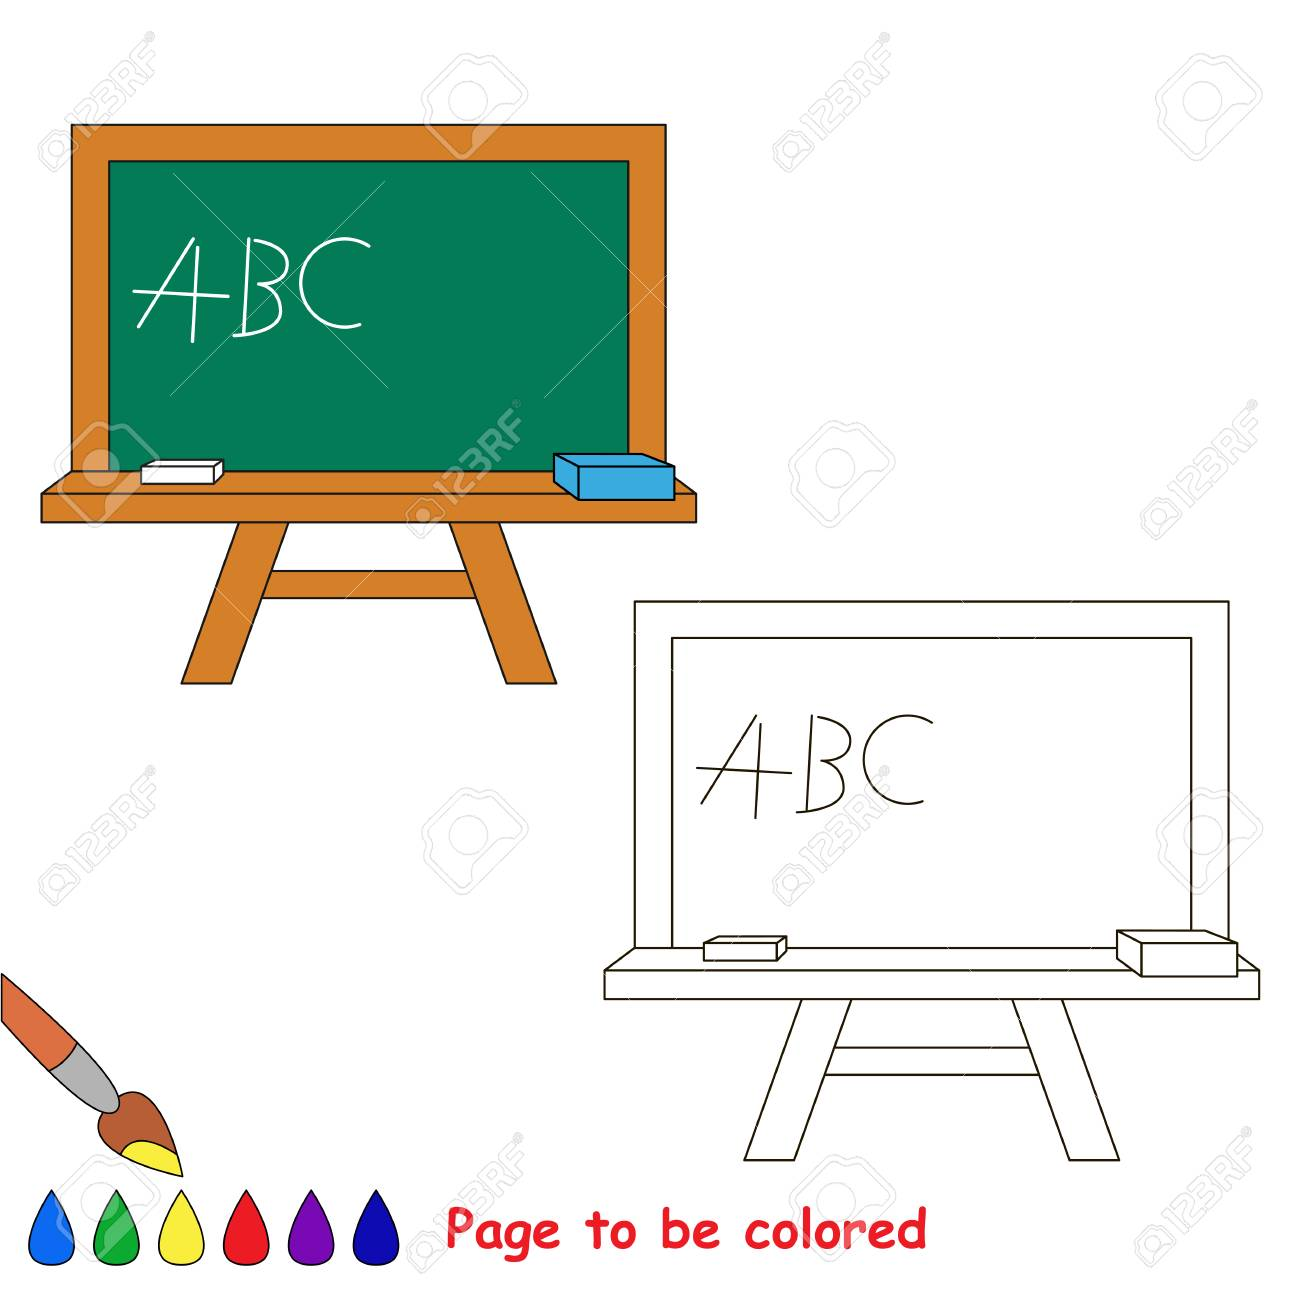 Green Board to be colored, the coloring book to educate preschool..